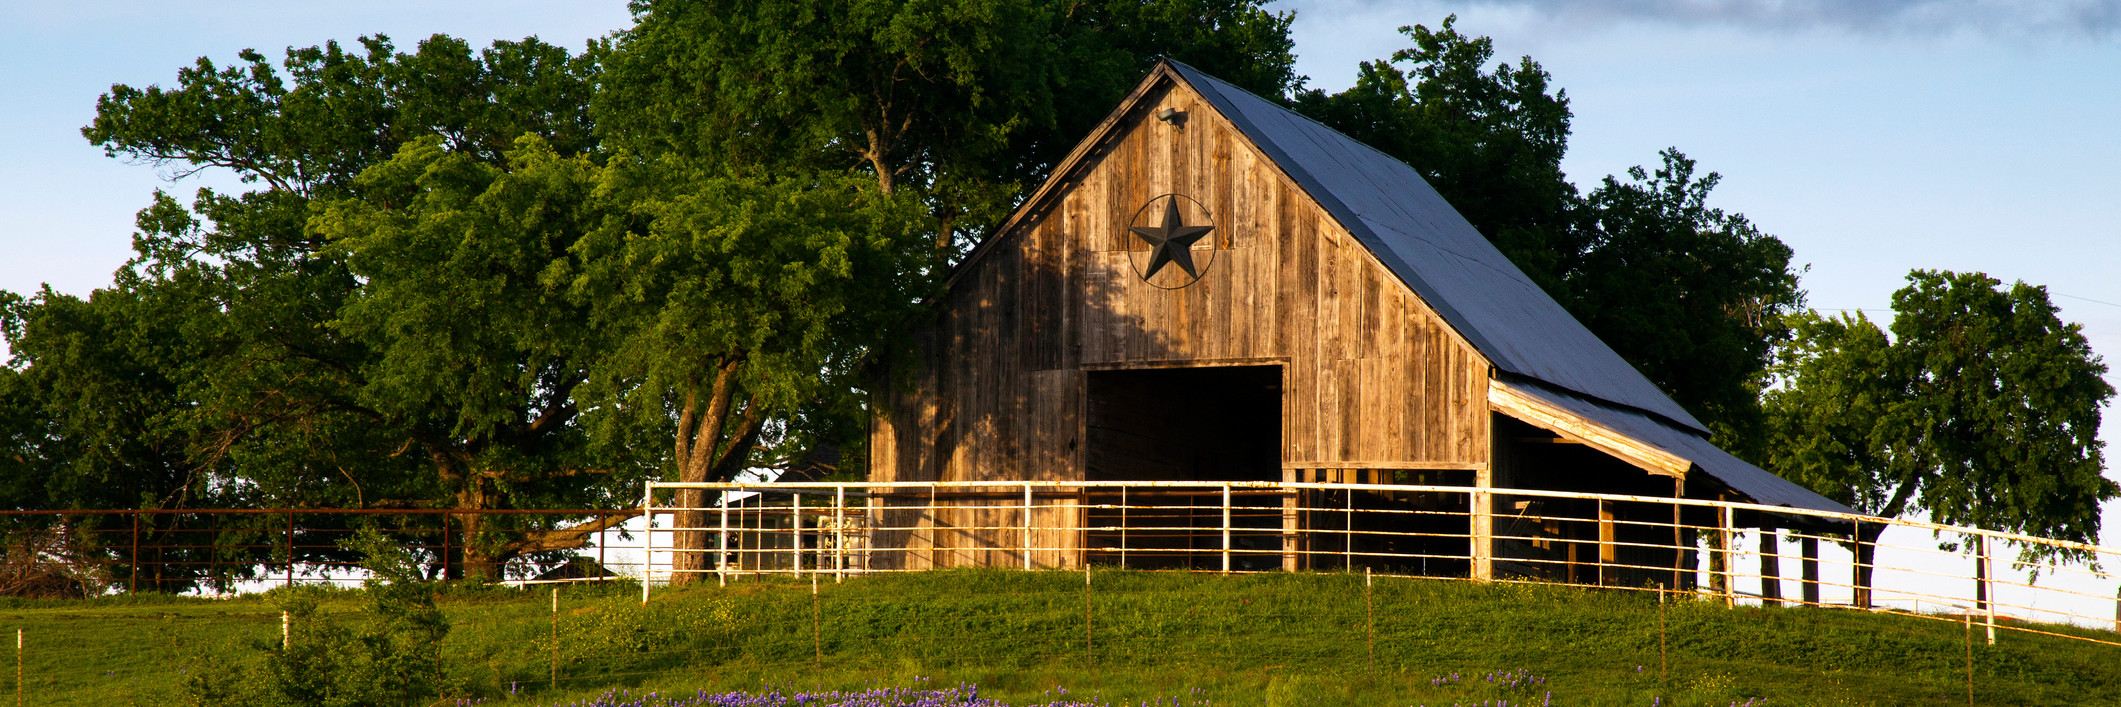 So You Want to Build a Barn? Read this Planning Guide First!